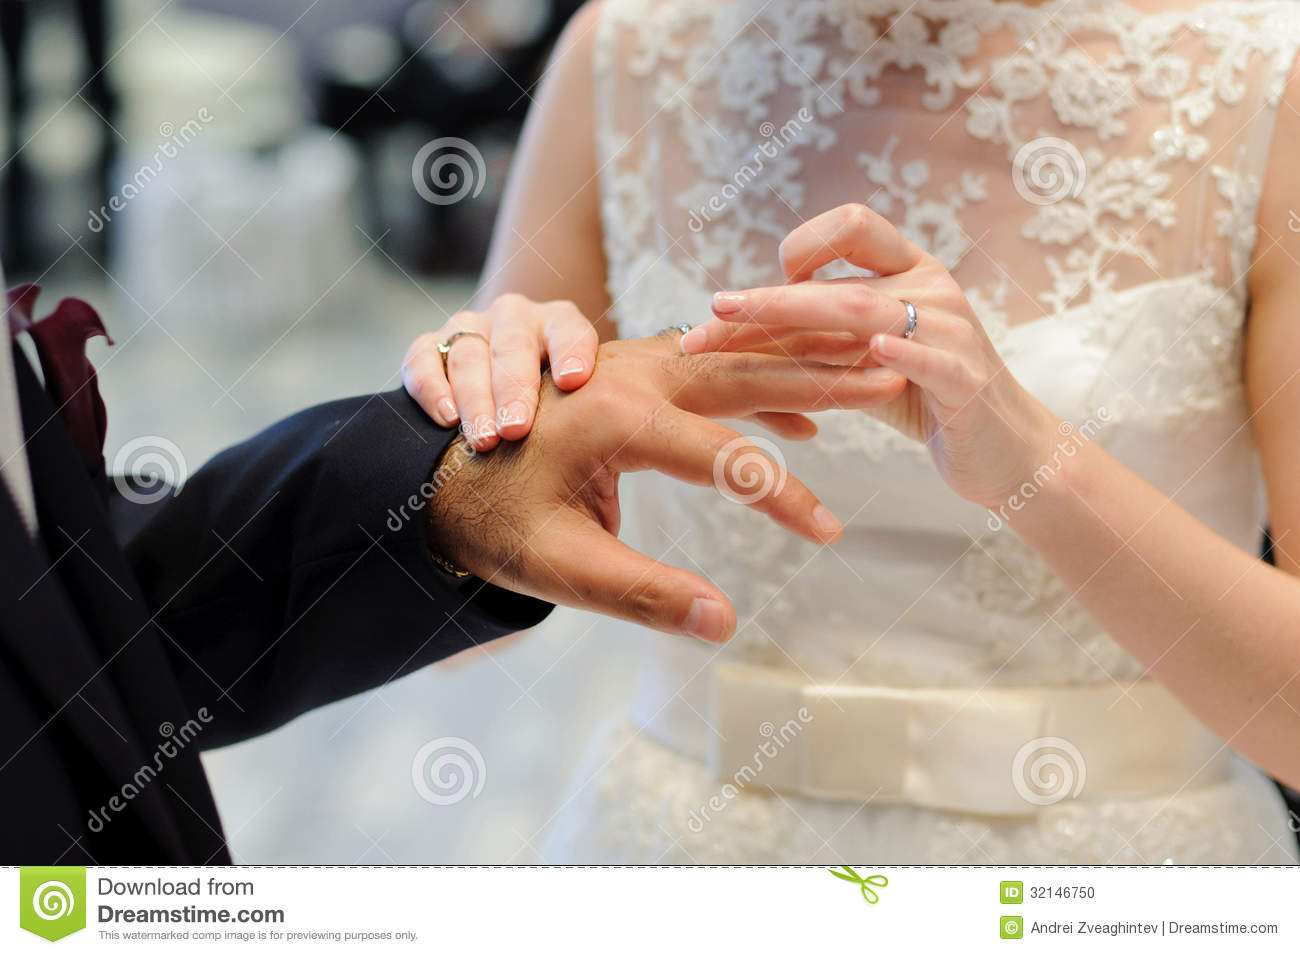 Exchanging Wedding Rings During Ceremony Stock Photo Image 32146750